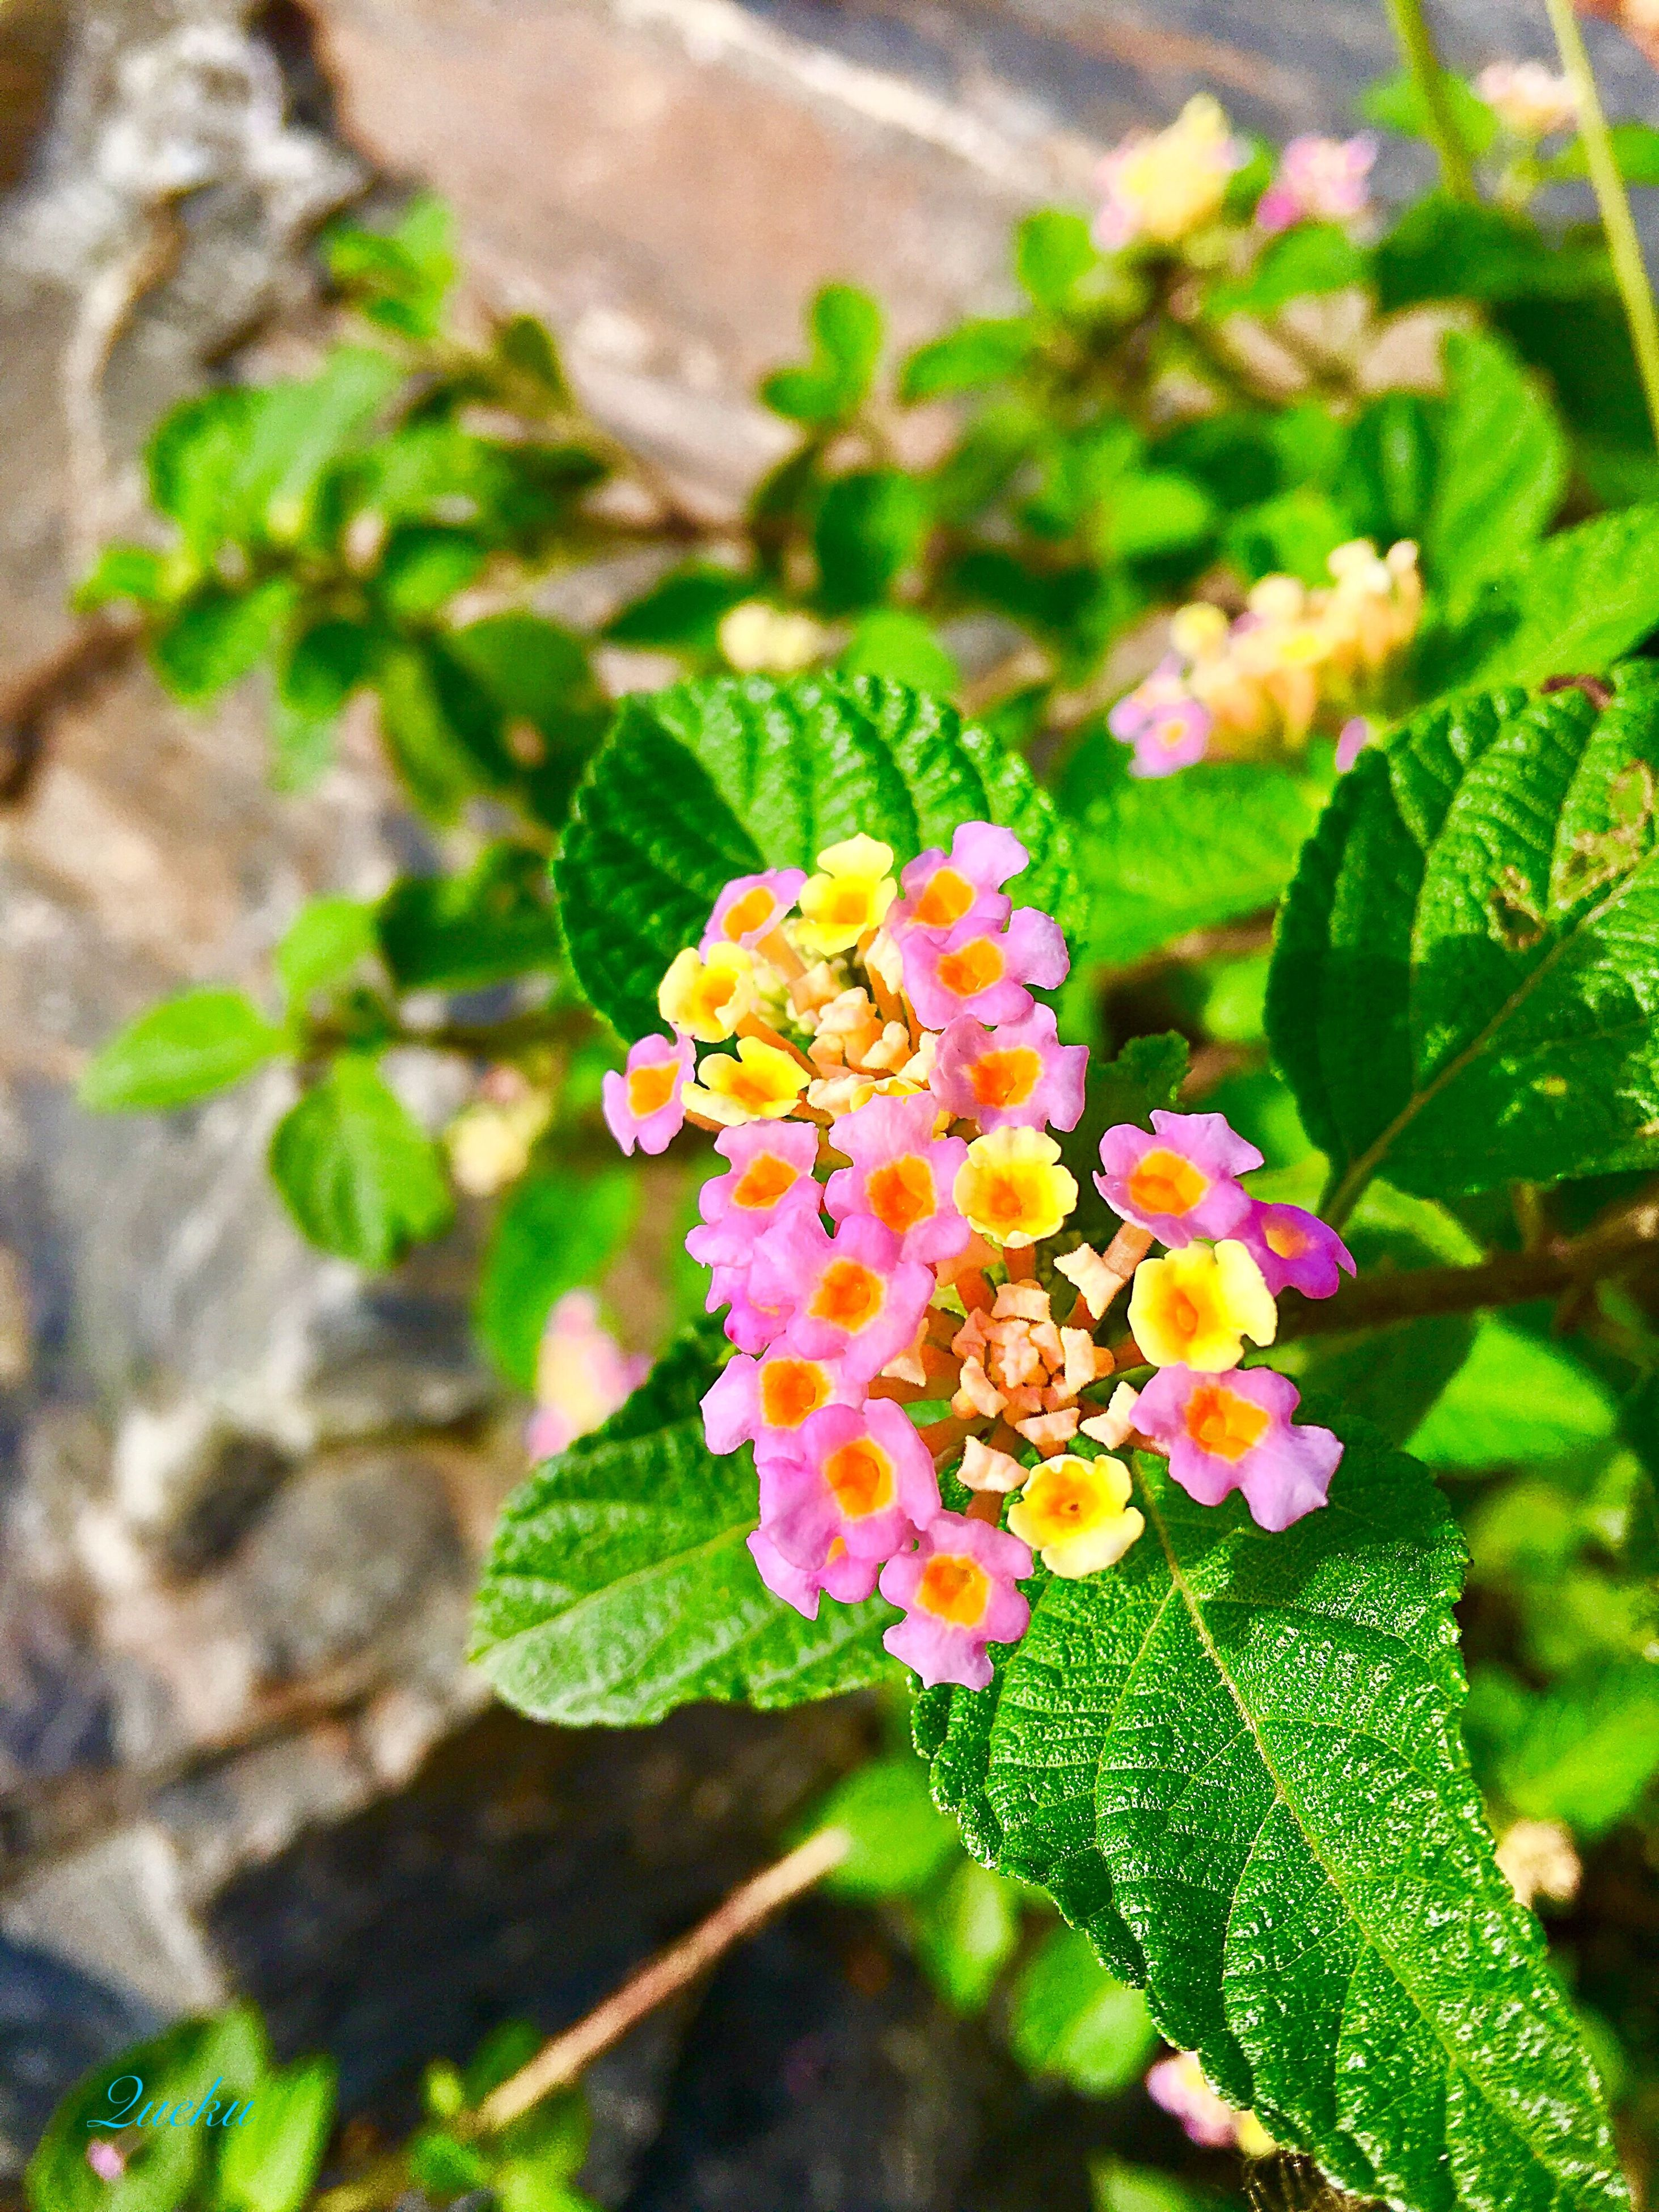 leaf, beauty in nature, growth, plant, nature, green color, day, freshness, focus on foreground, outdoors, lantana camara, flower, no people, fragility, close-up, flower head, blooming